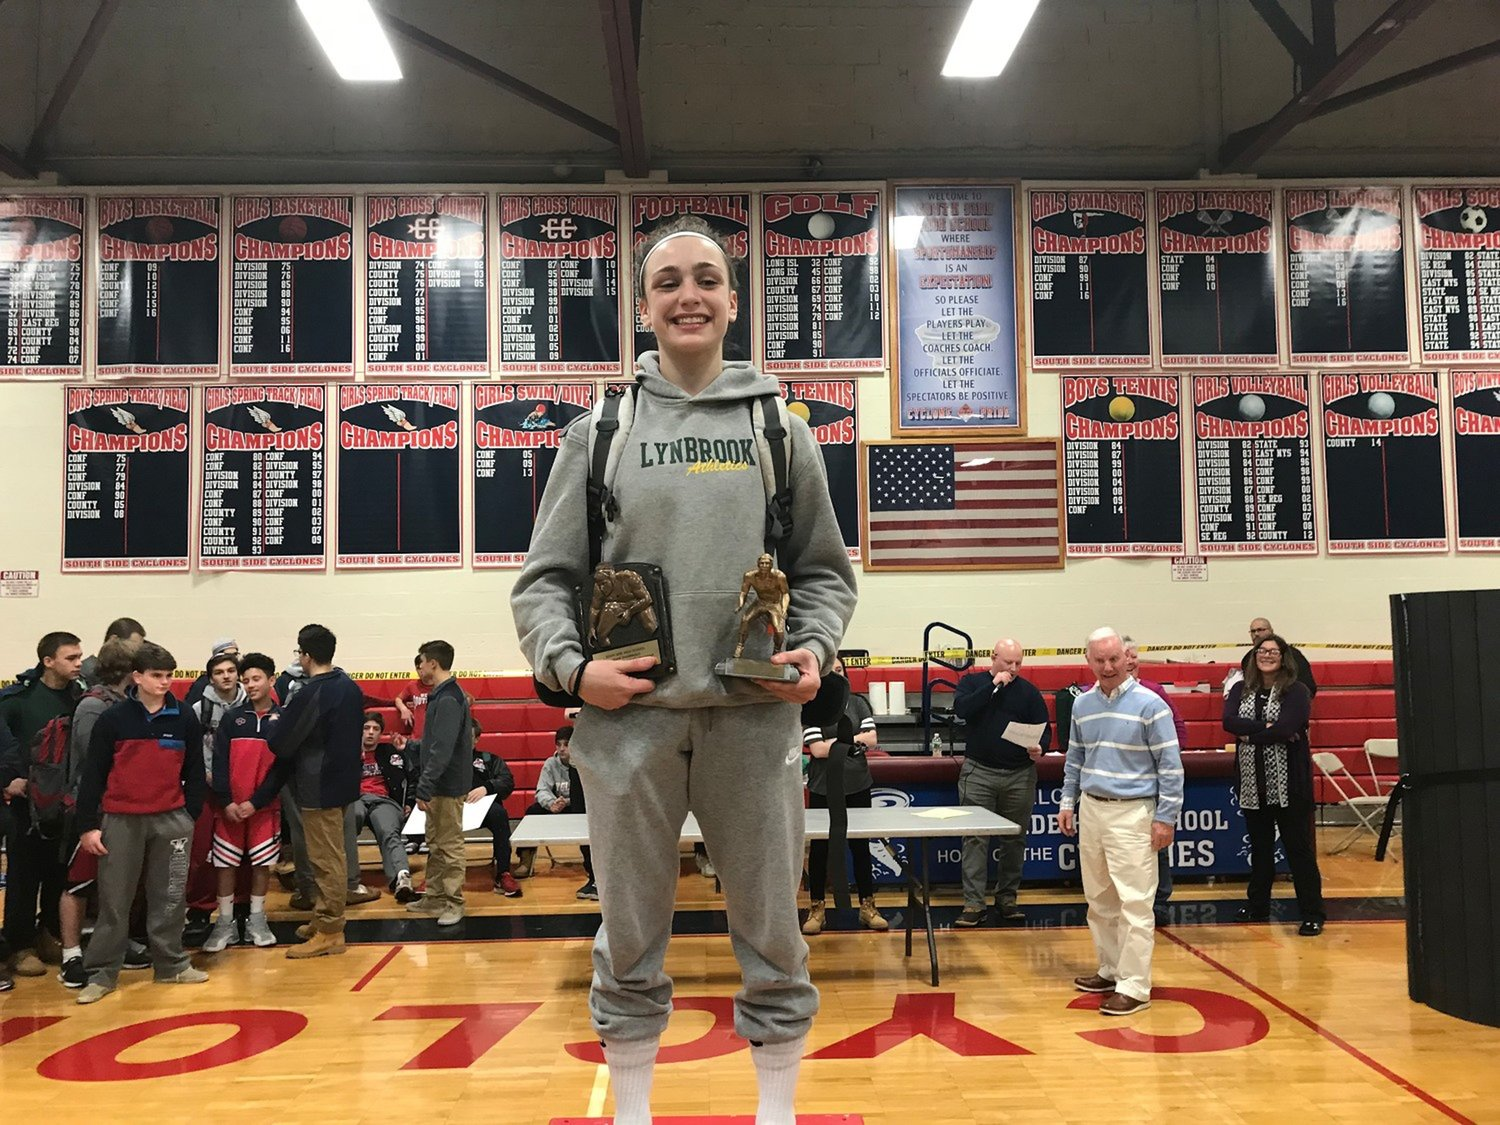 Former Lynbrook High School wrestler Ally Fitzgerald committed to join the new women's team at Sacred Heat University in Connecticut. She made history as a freshman at LHS in 2018, when she became the first female to win in her weight class at a boys' wrestling tournament in Nassau County.